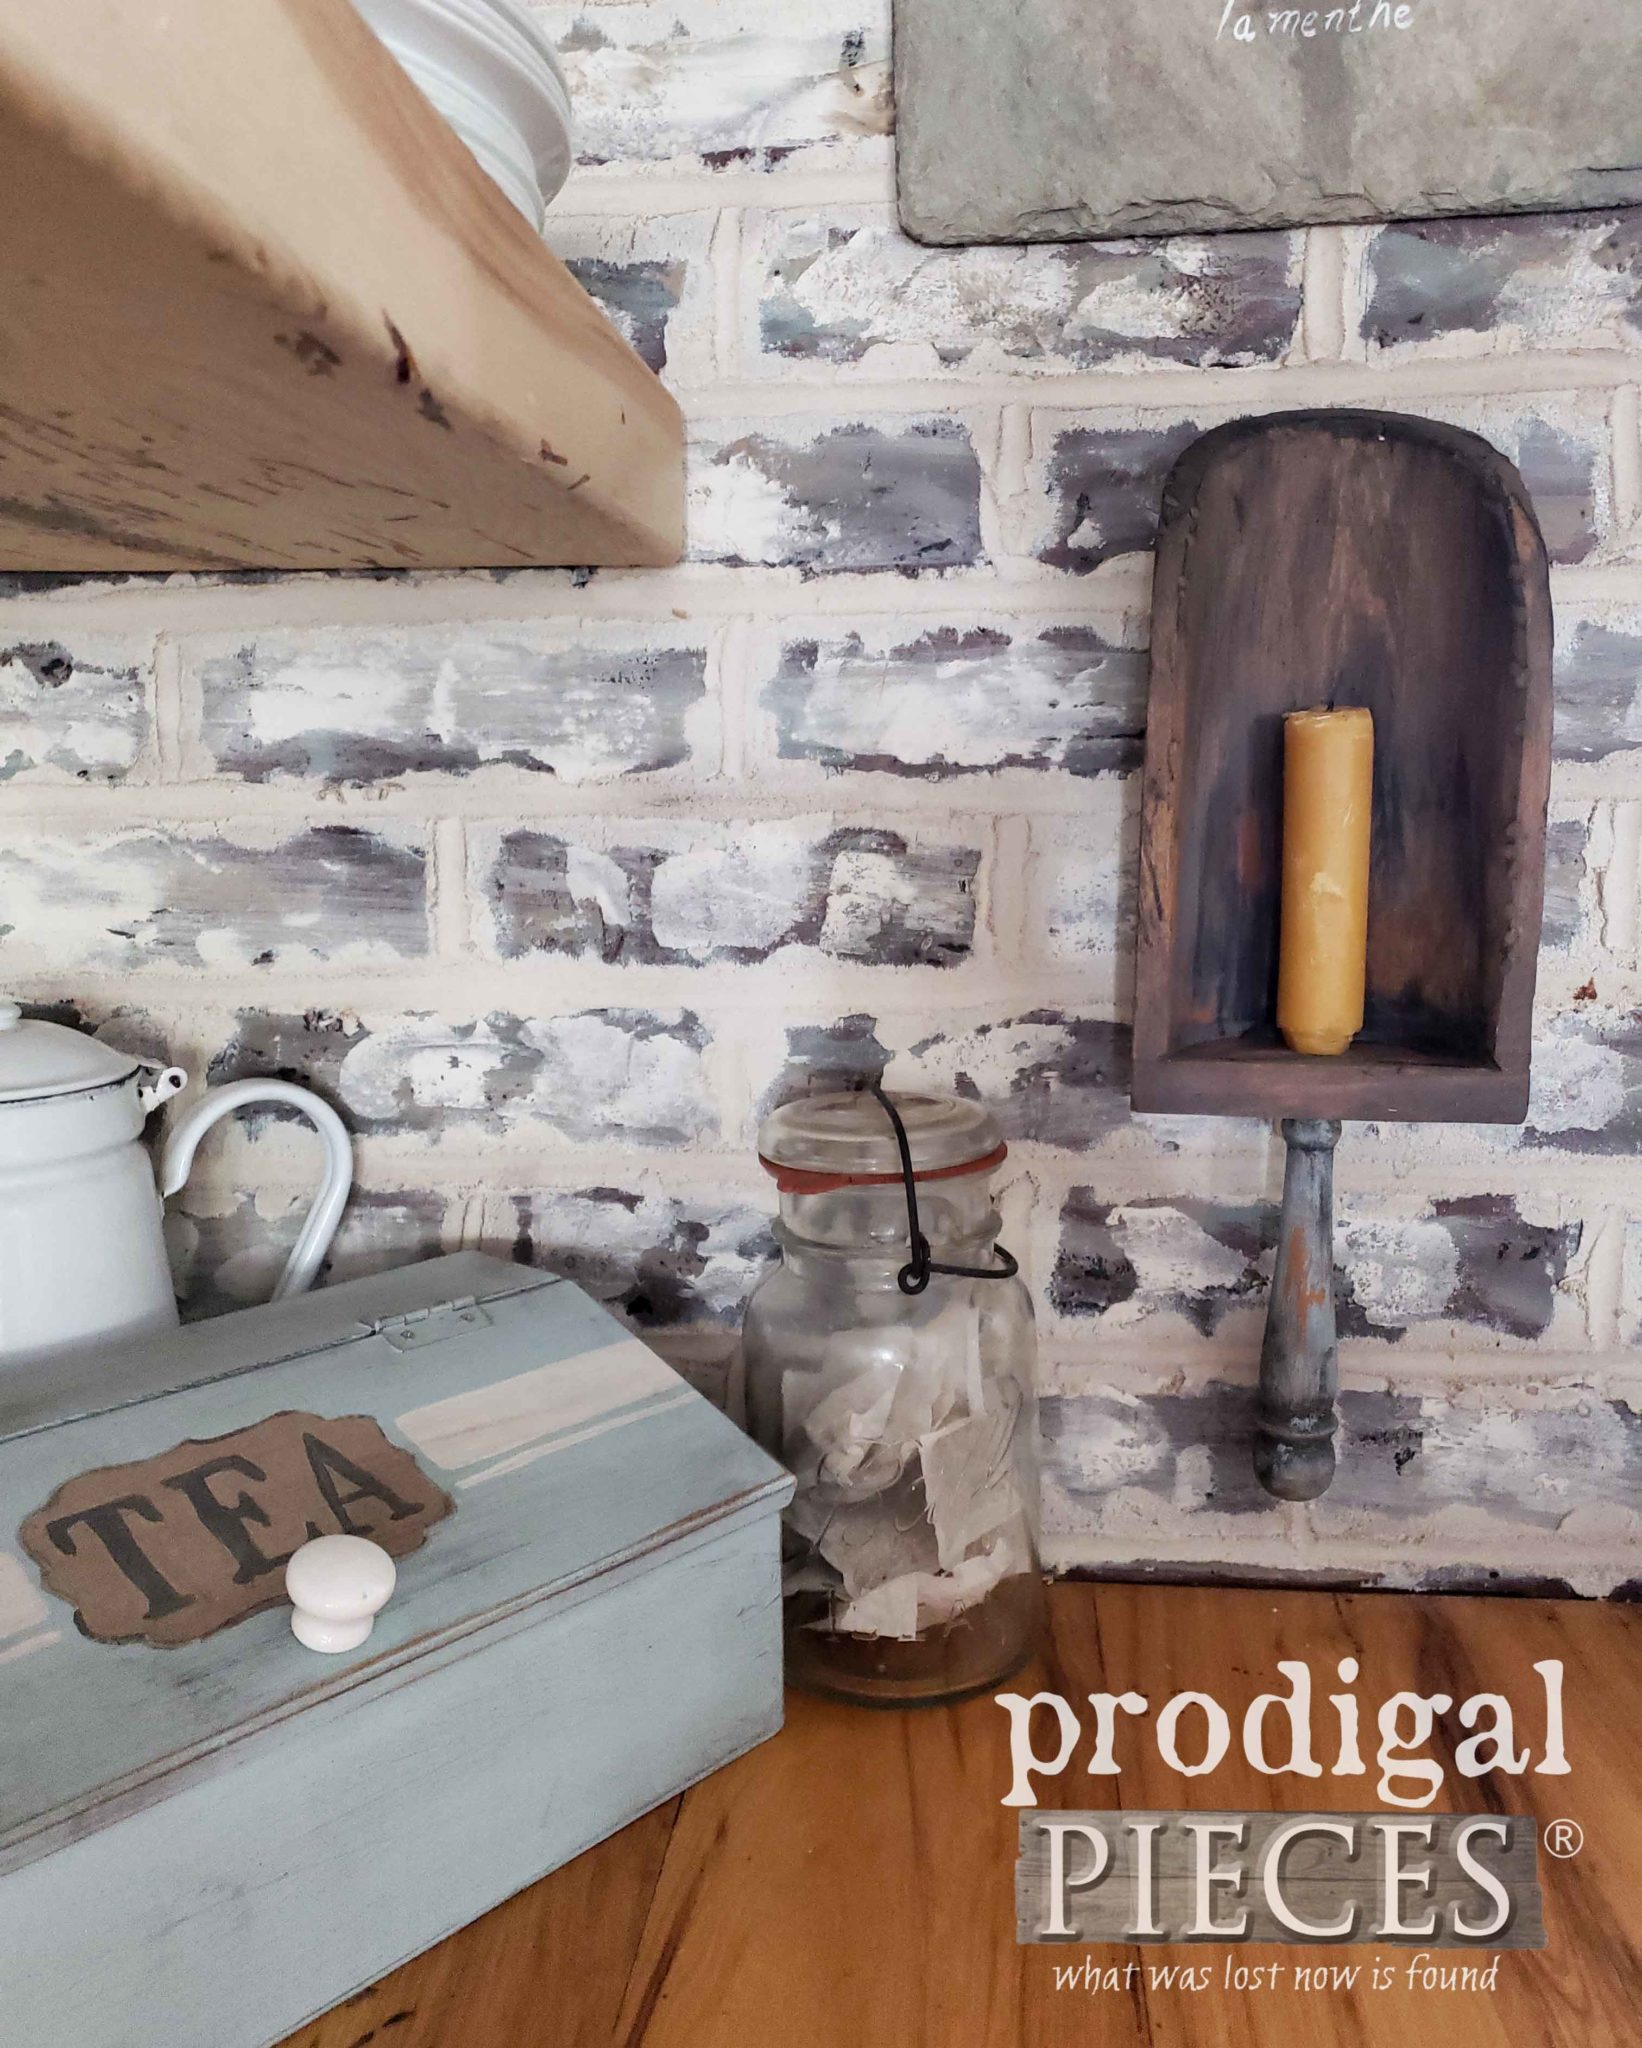 Rustic Farmhouse Kitchen Decor Handmade by Larissa of Prodigal Pieces | prodigalpieces.com #prodigalpieces #handmade #diy #farmhouse #home #homedecor #homedecorideas #shopping #vintage